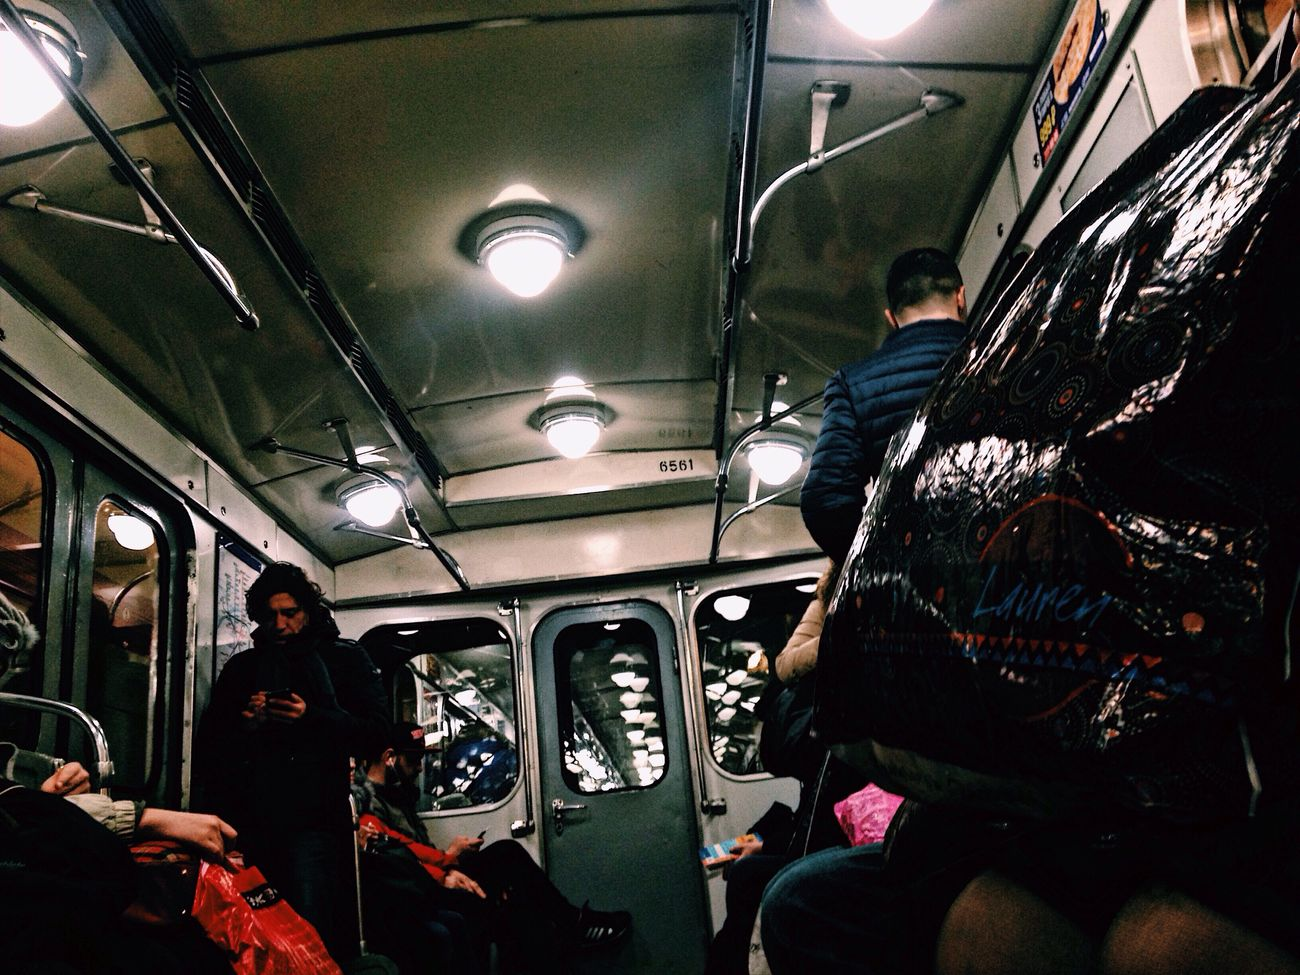 Vehicle Interior Public Transportation Mode Of Transport Travel Subway Train Passenger Train - Vehicle Indoors  Commuter Lifestyles Journey Real People Sitting Men Commuter Train Adults Only Illuminated One Person People